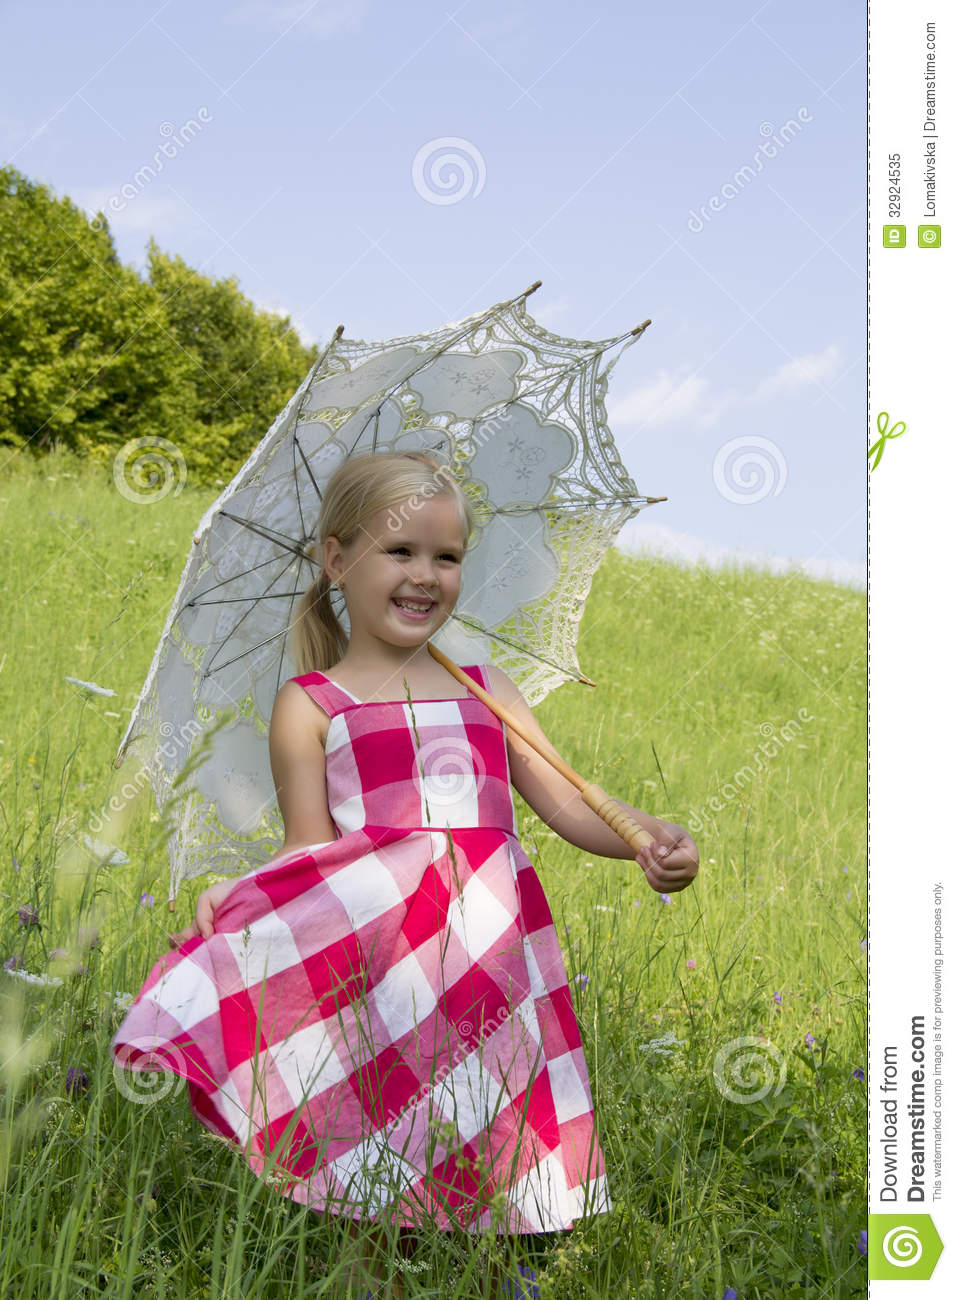 Girl with a summer umbrella